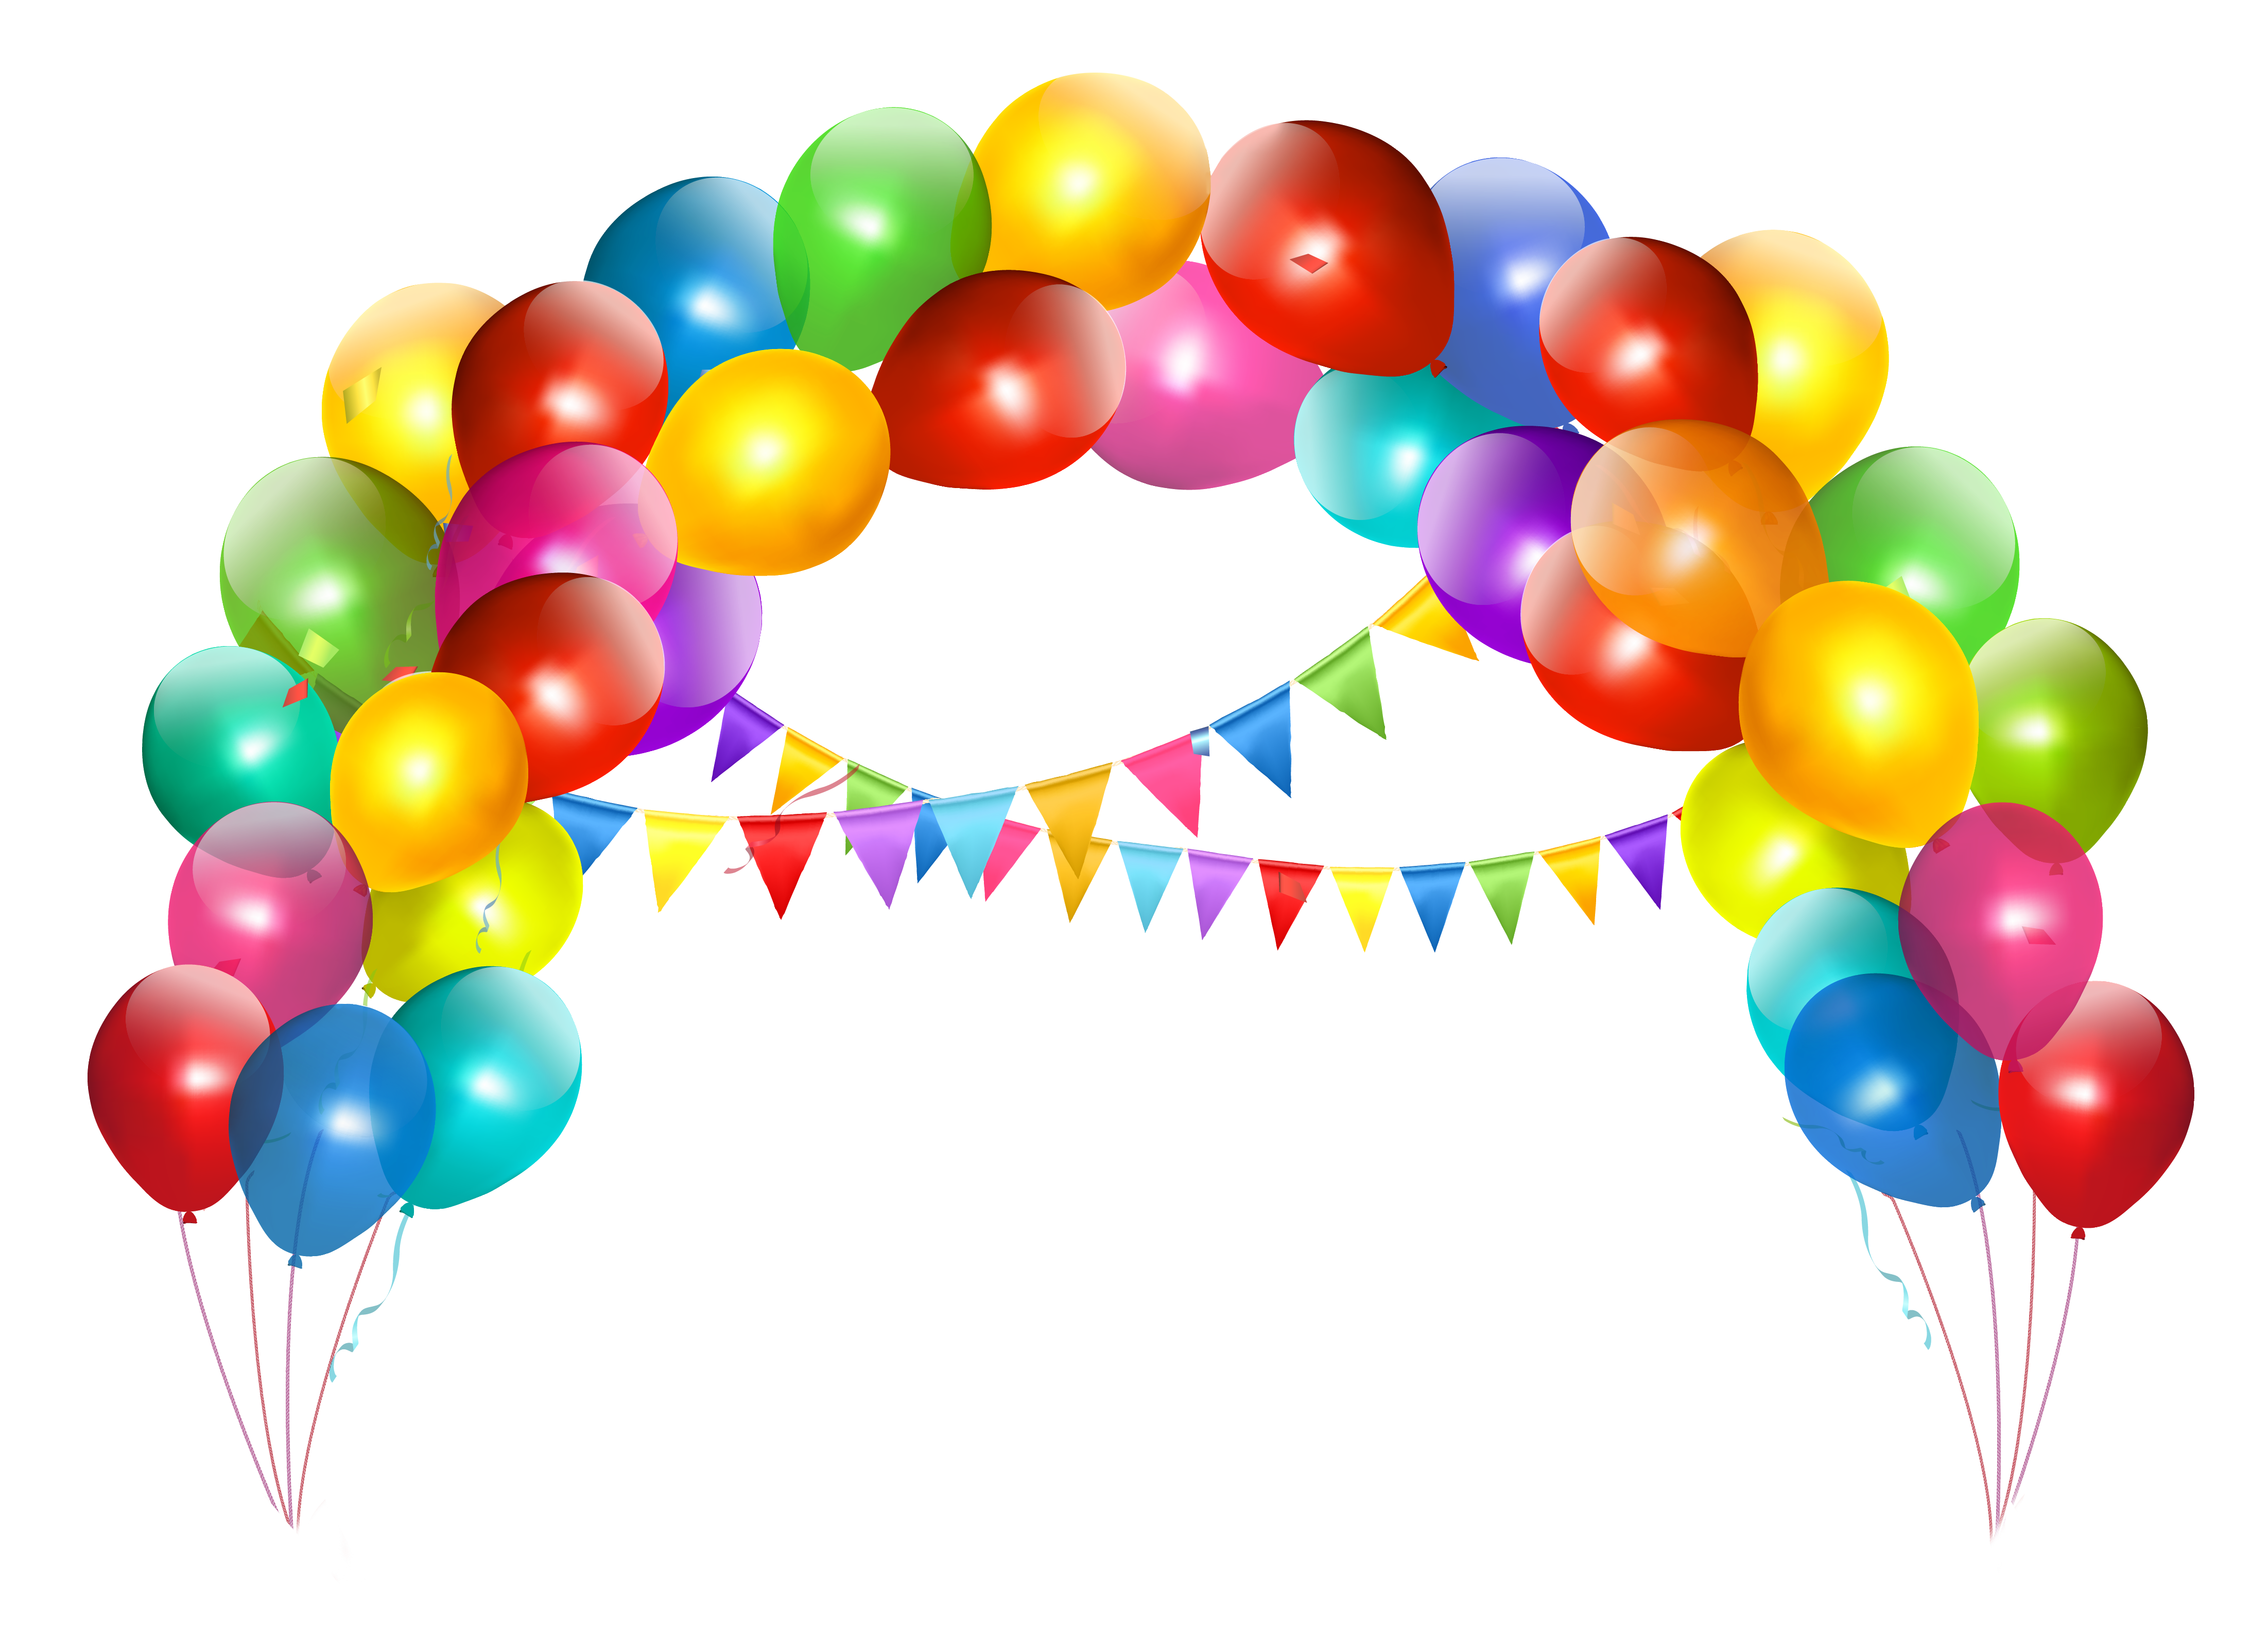 Balloon clipart #1, Download drawings